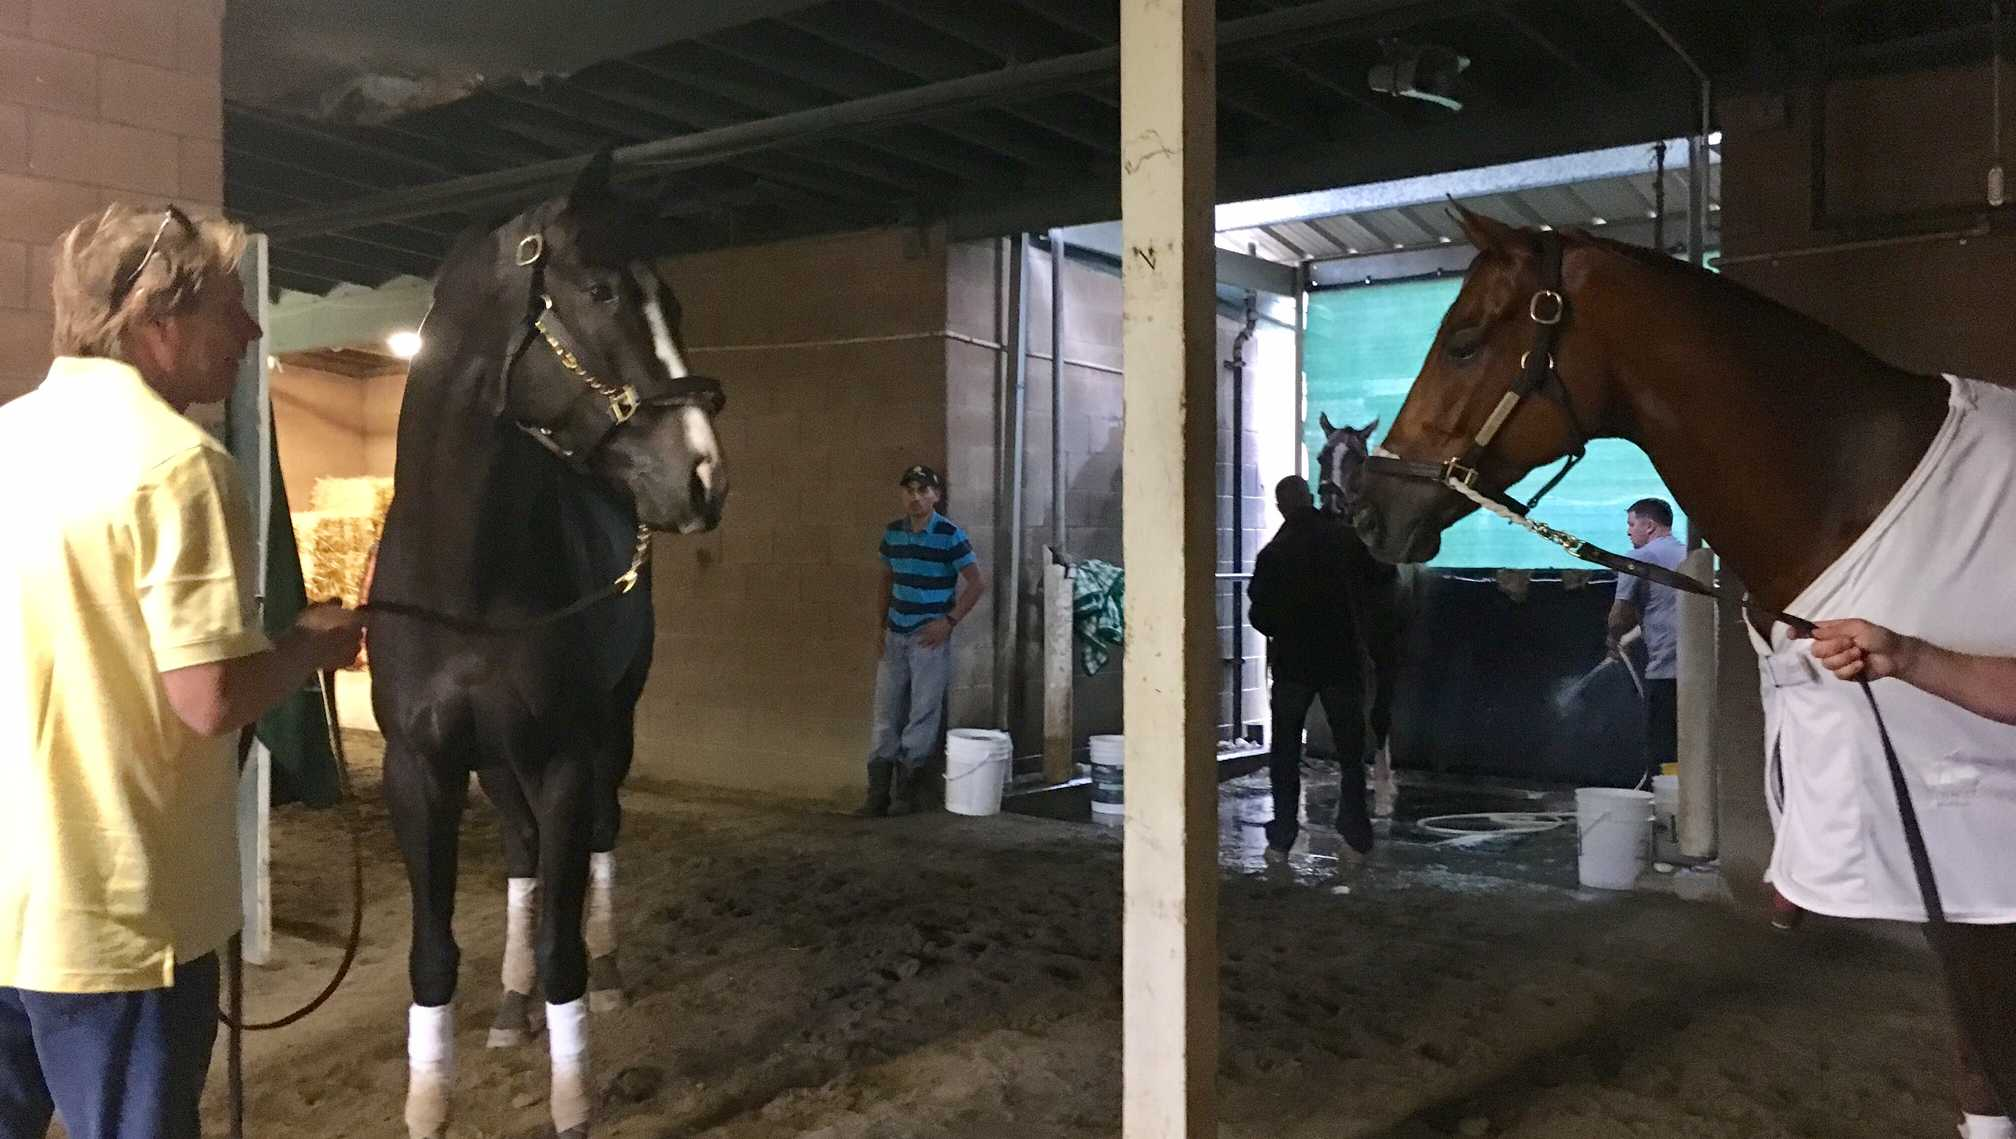 Gun Runner (at right) and Tom's Ready (with trainer Dallas Stewart on the lead shank) eyeball each other in the Breeders' Cup barn at Santa Anita after training. The horses were 1-2 in the Fair Grounds' Louisiana Derby.